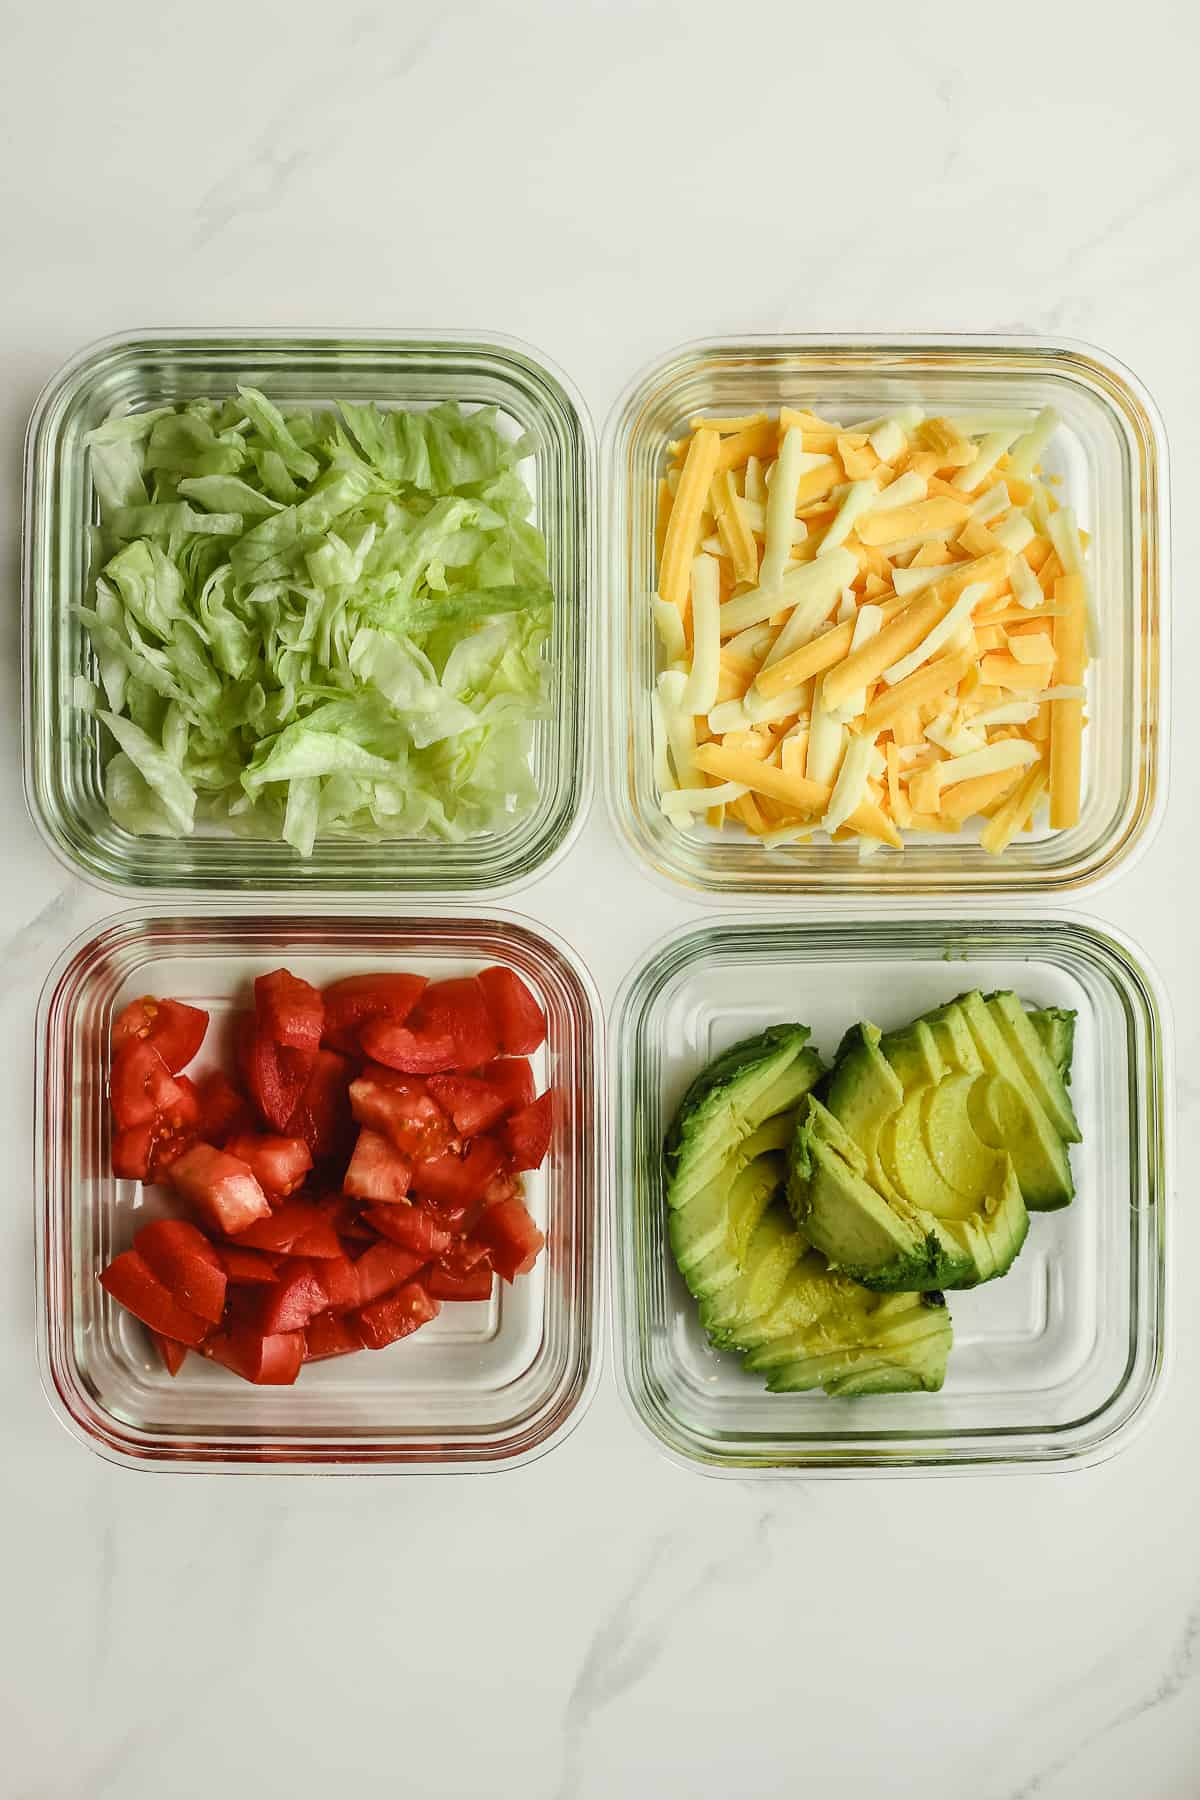 Four square glass bowls of condiments - lettuce, cheese, tomato, and avocado.